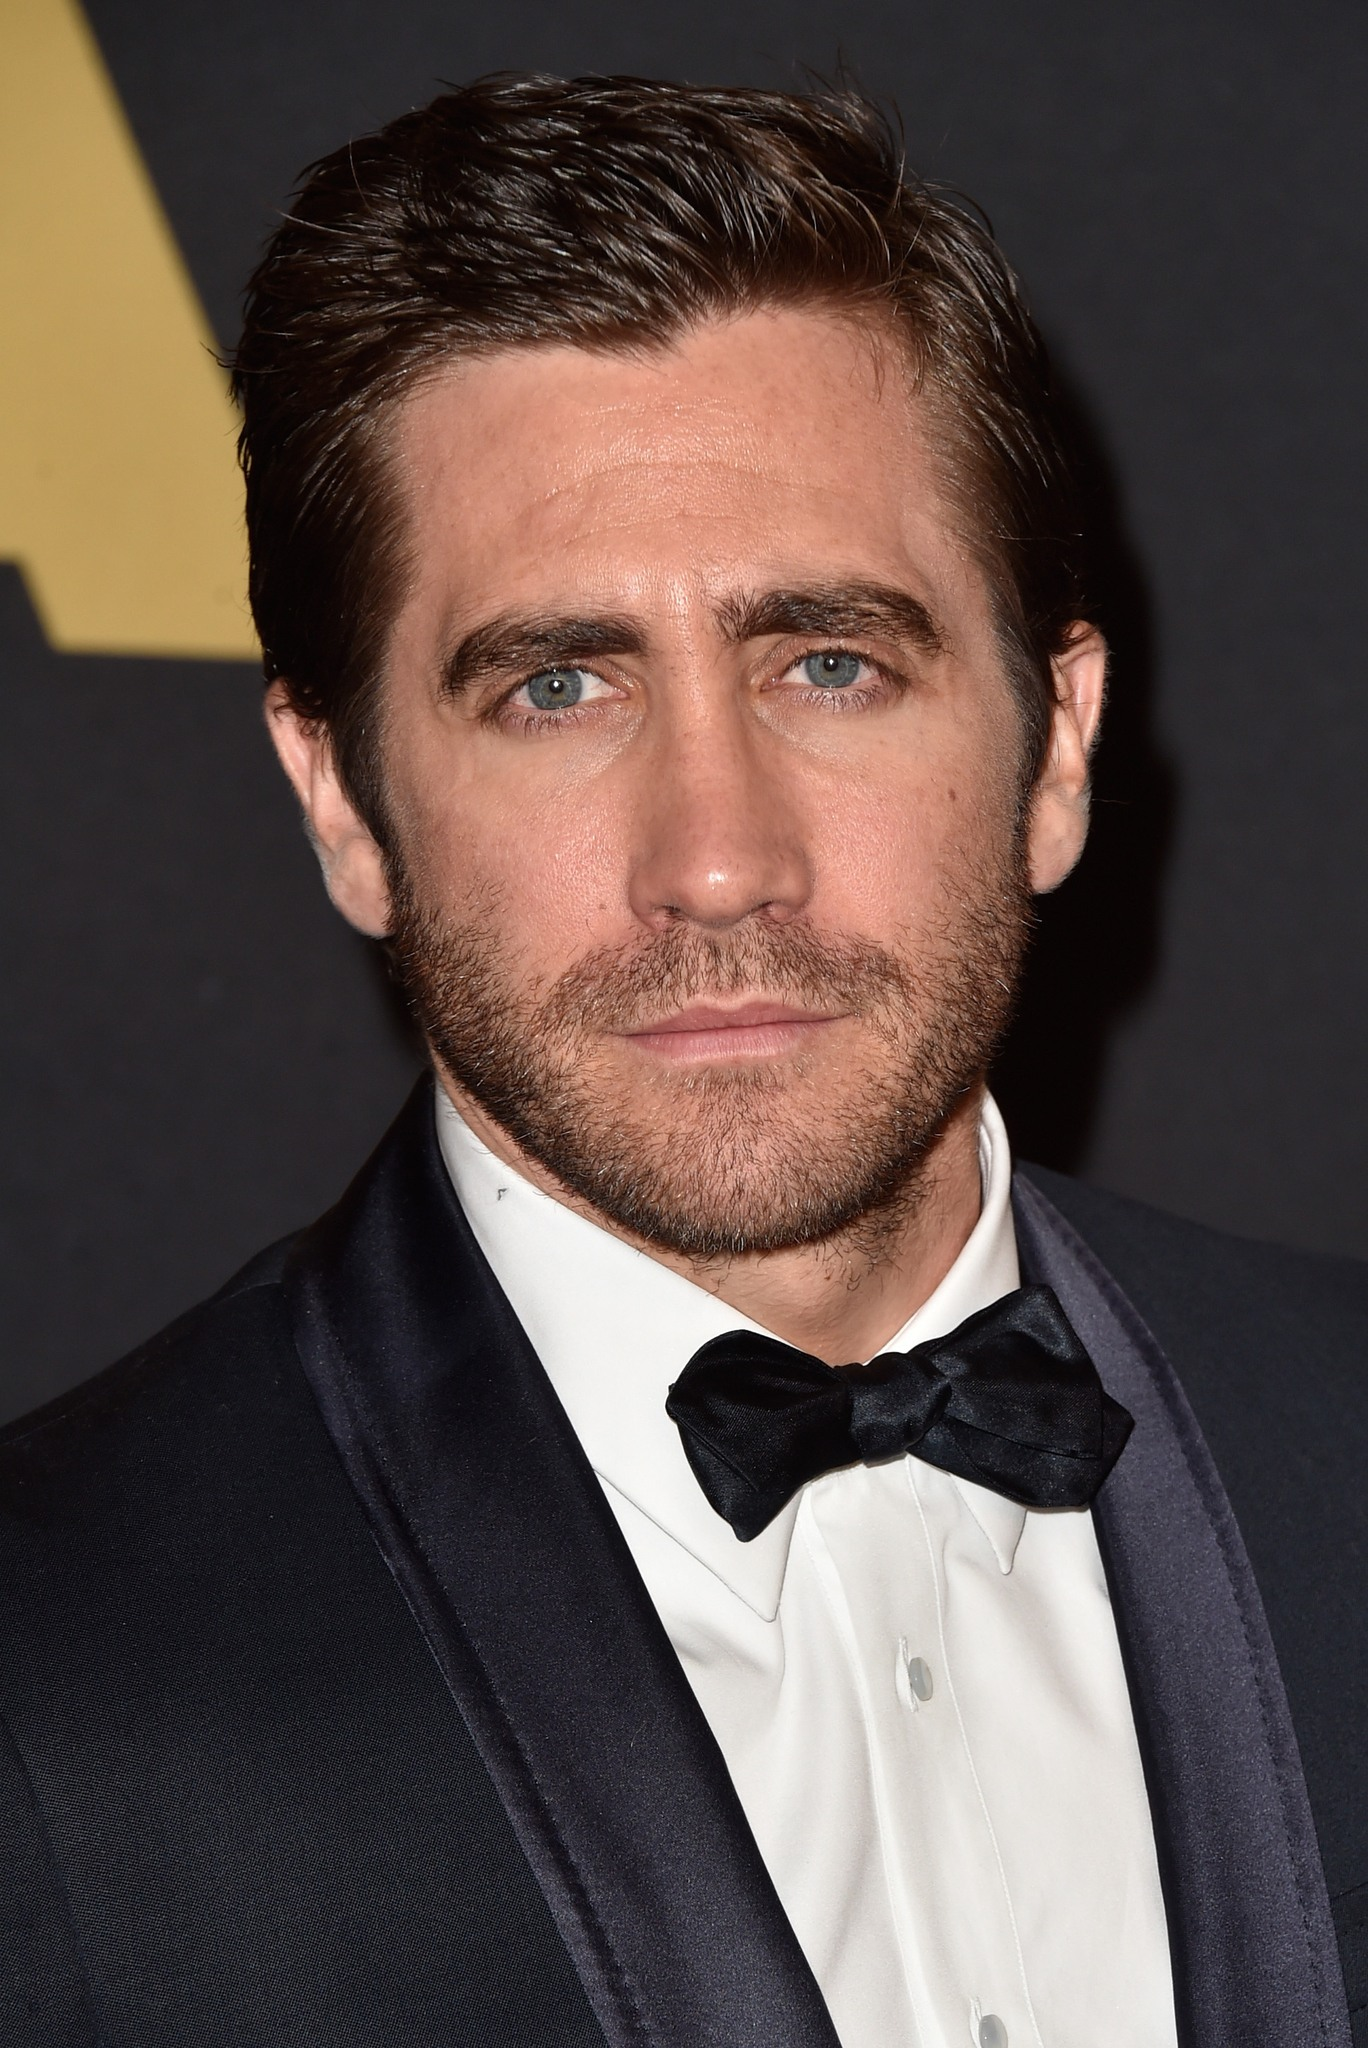 lifeguard 10 Things You Didn't Know About Jake Gyllenhaal